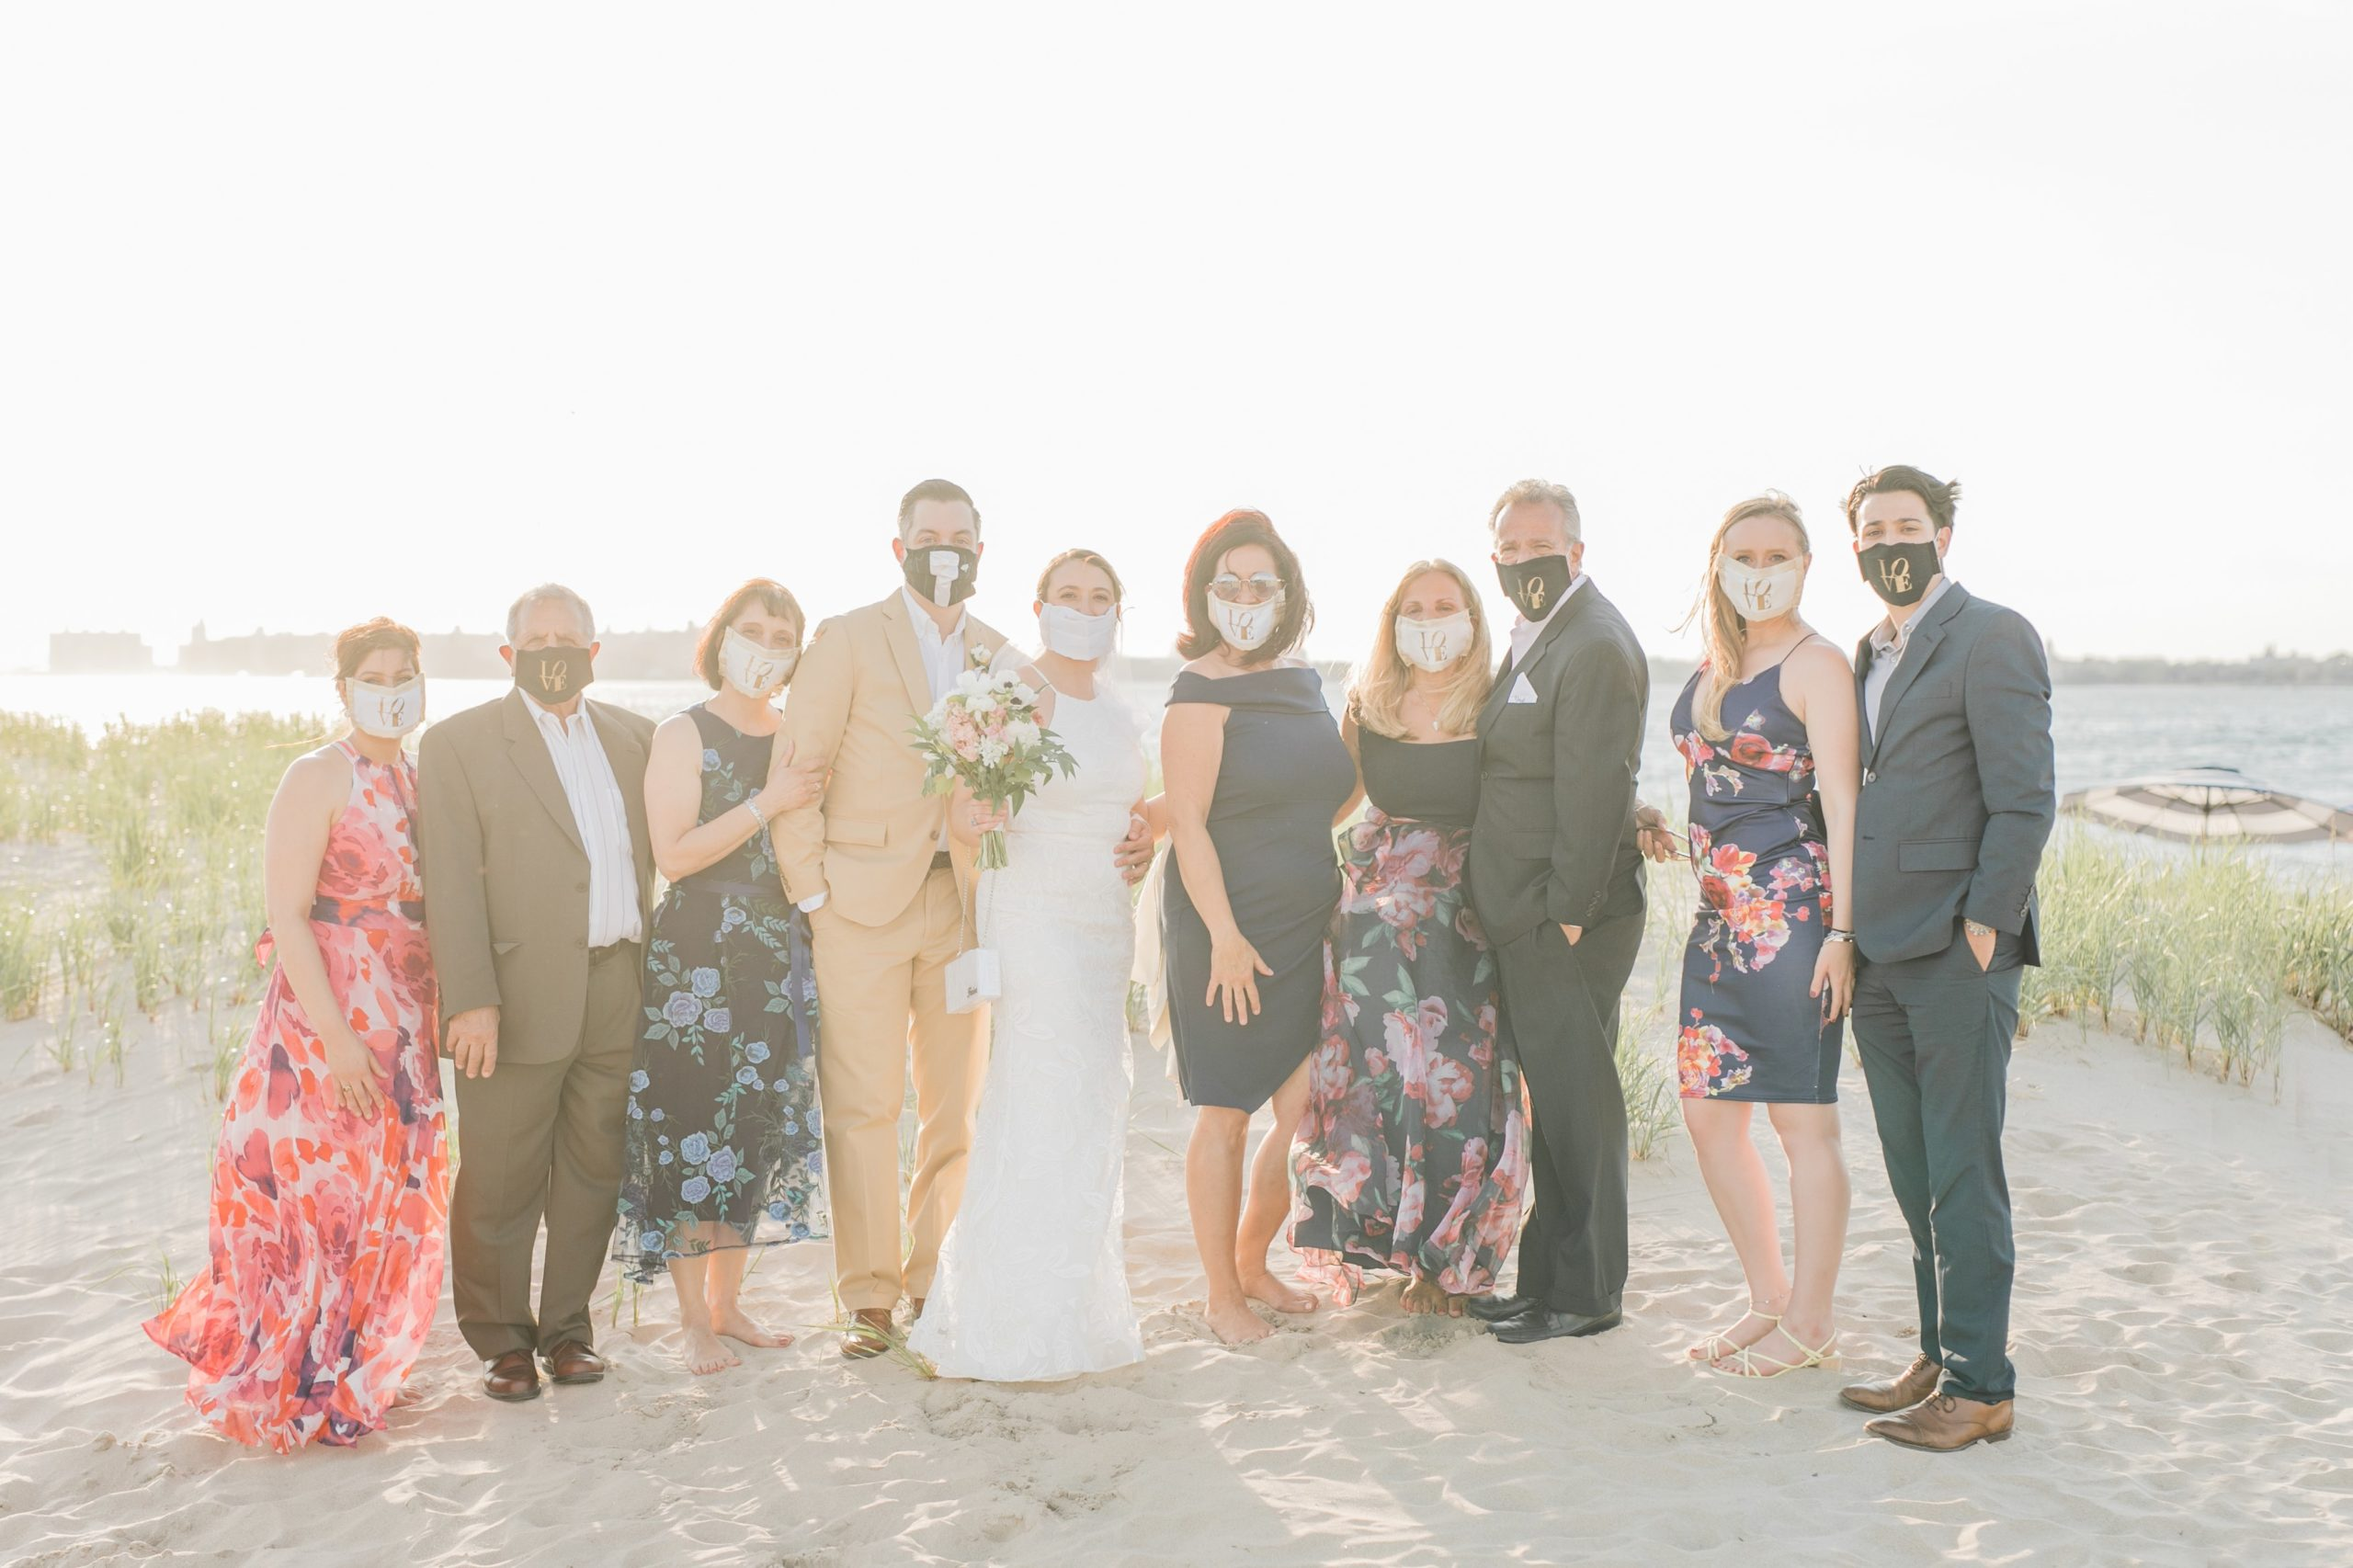 Bride and Groom + family picture on beach